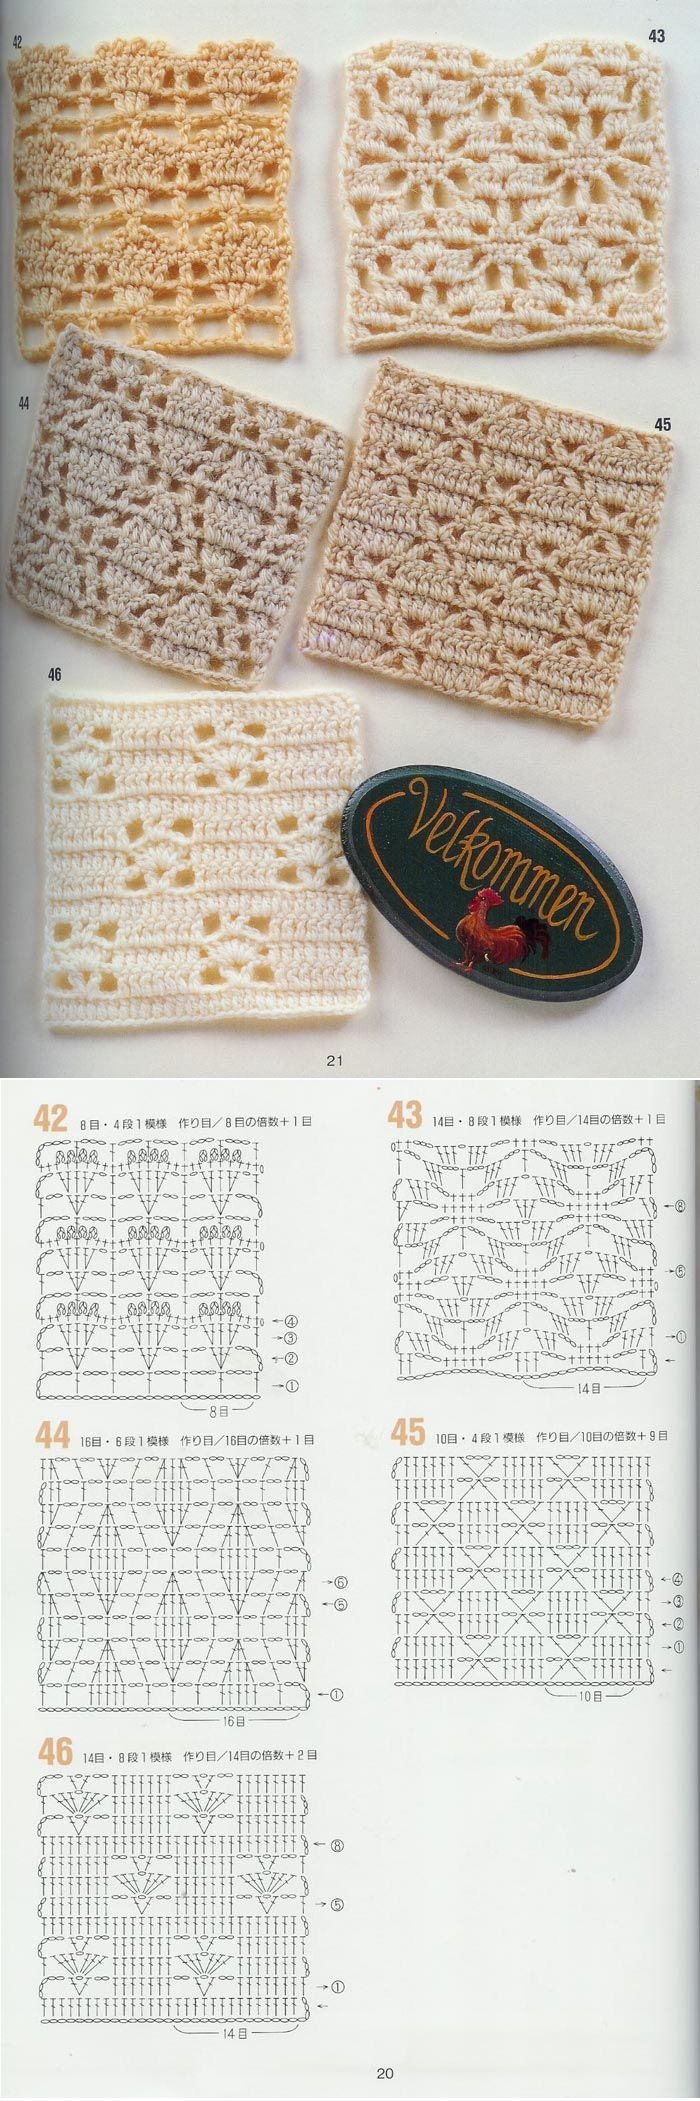 These would be perfect as pockets sewn onto my pocket-less sweater cardi!